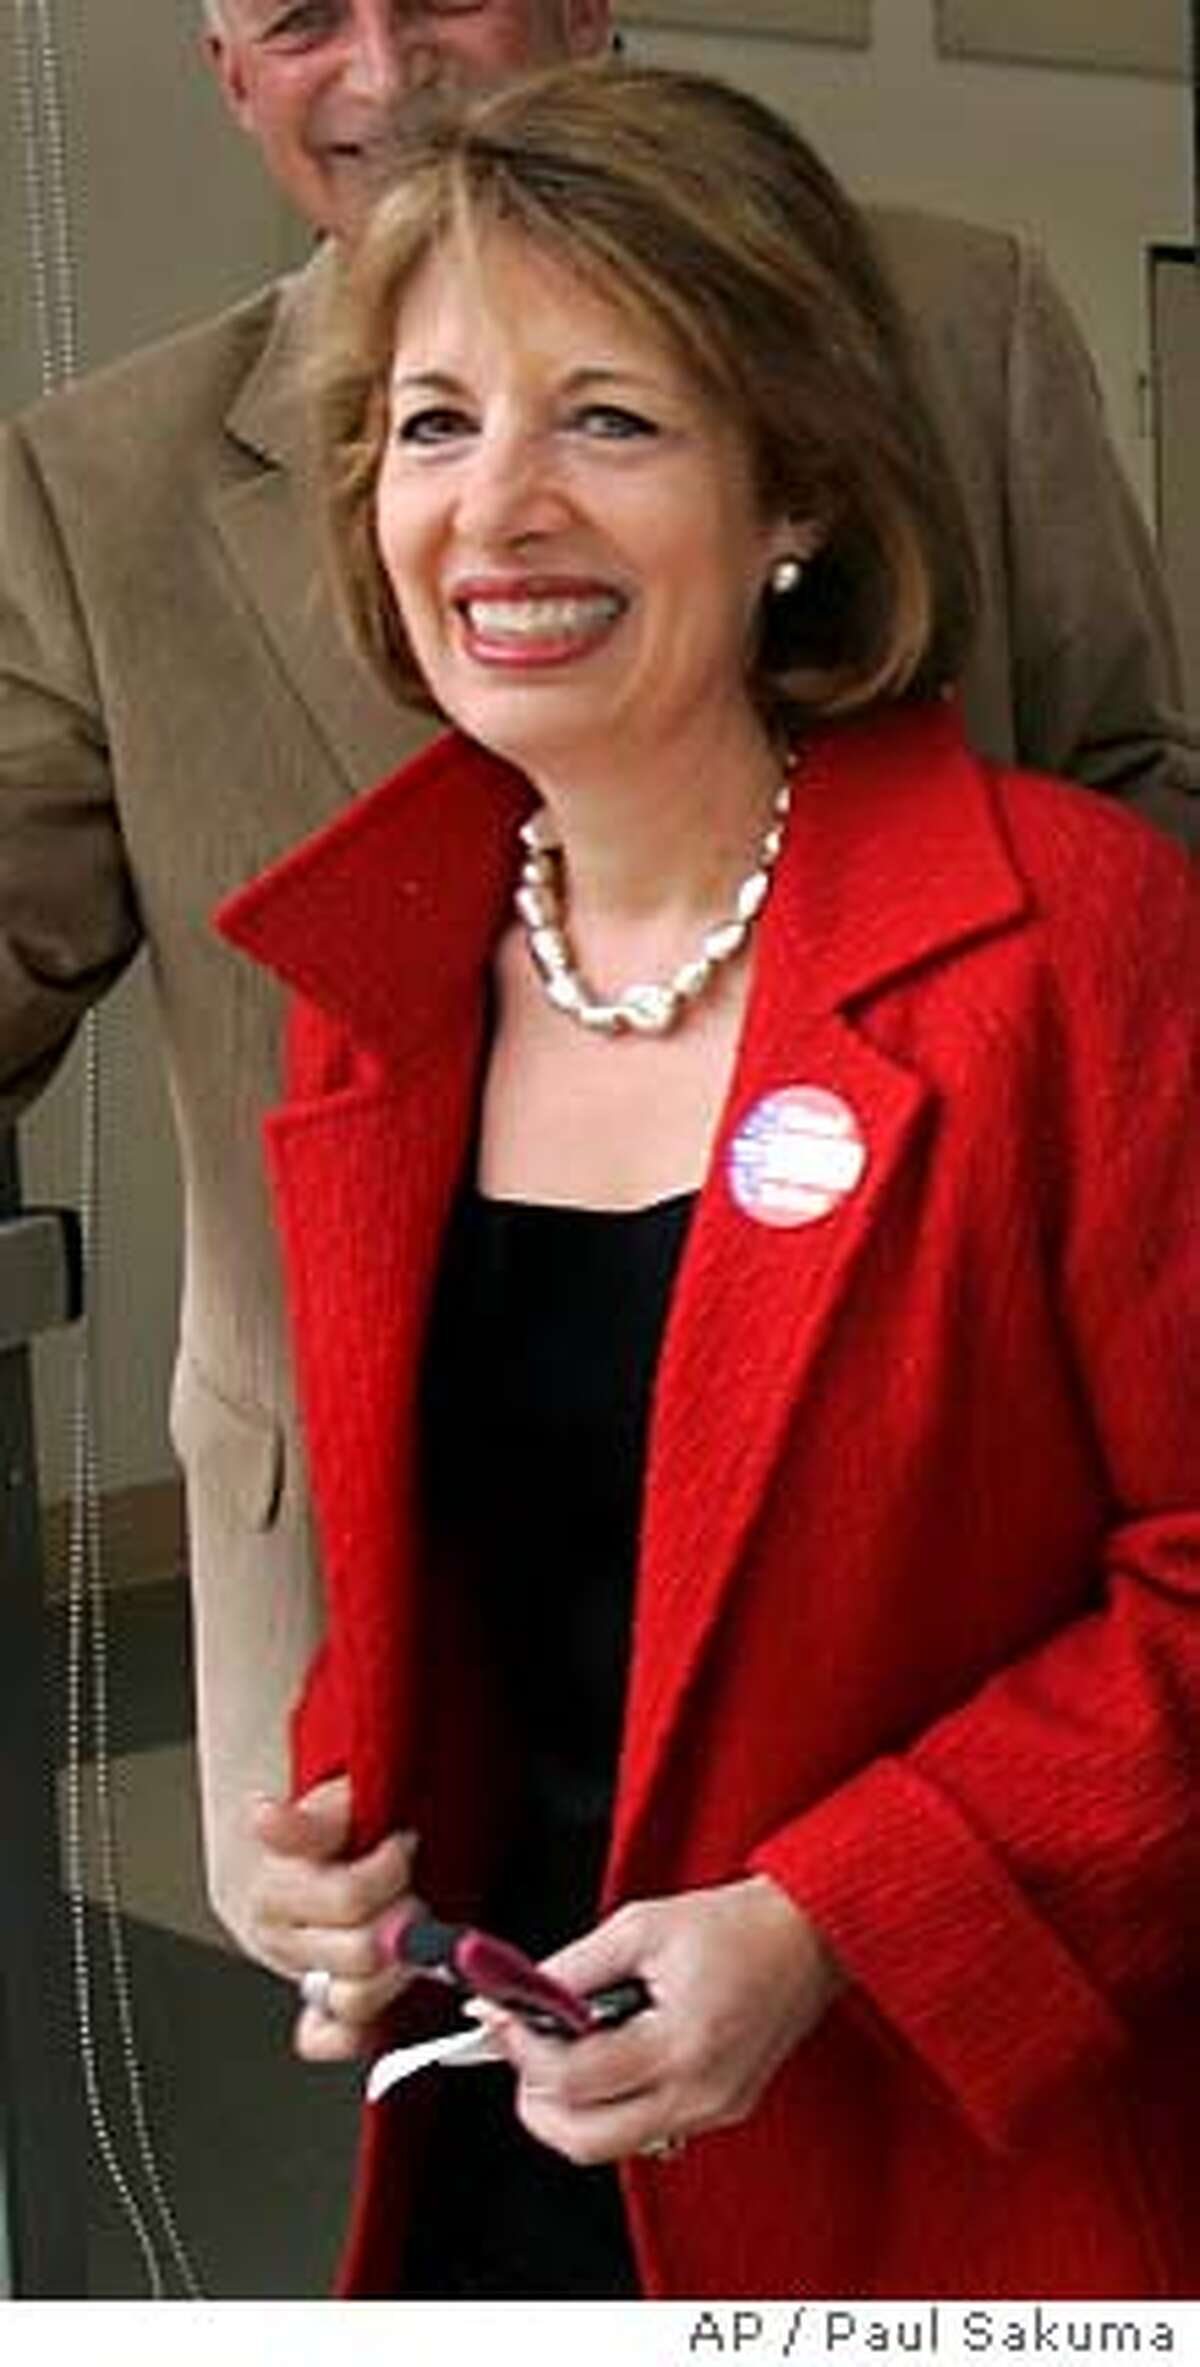 Jackie Speier, right, leaves with her husband, Barry Dennis, left, after voting in a special election in San Mateo, Calif., Tuesday, April 8, 2008. Speier, who as a congressional aide nearly 30 years ago was shot and left for dead on a Guyana airstrip, is seeking to win the House seat once held by her former boss. A former California state lawmaker, Speier was the favorite to win a special election to fill the House seat left vacant by the death of Democratic Rep. Tom Lantos. (AP Photo/Paul Sakuma)